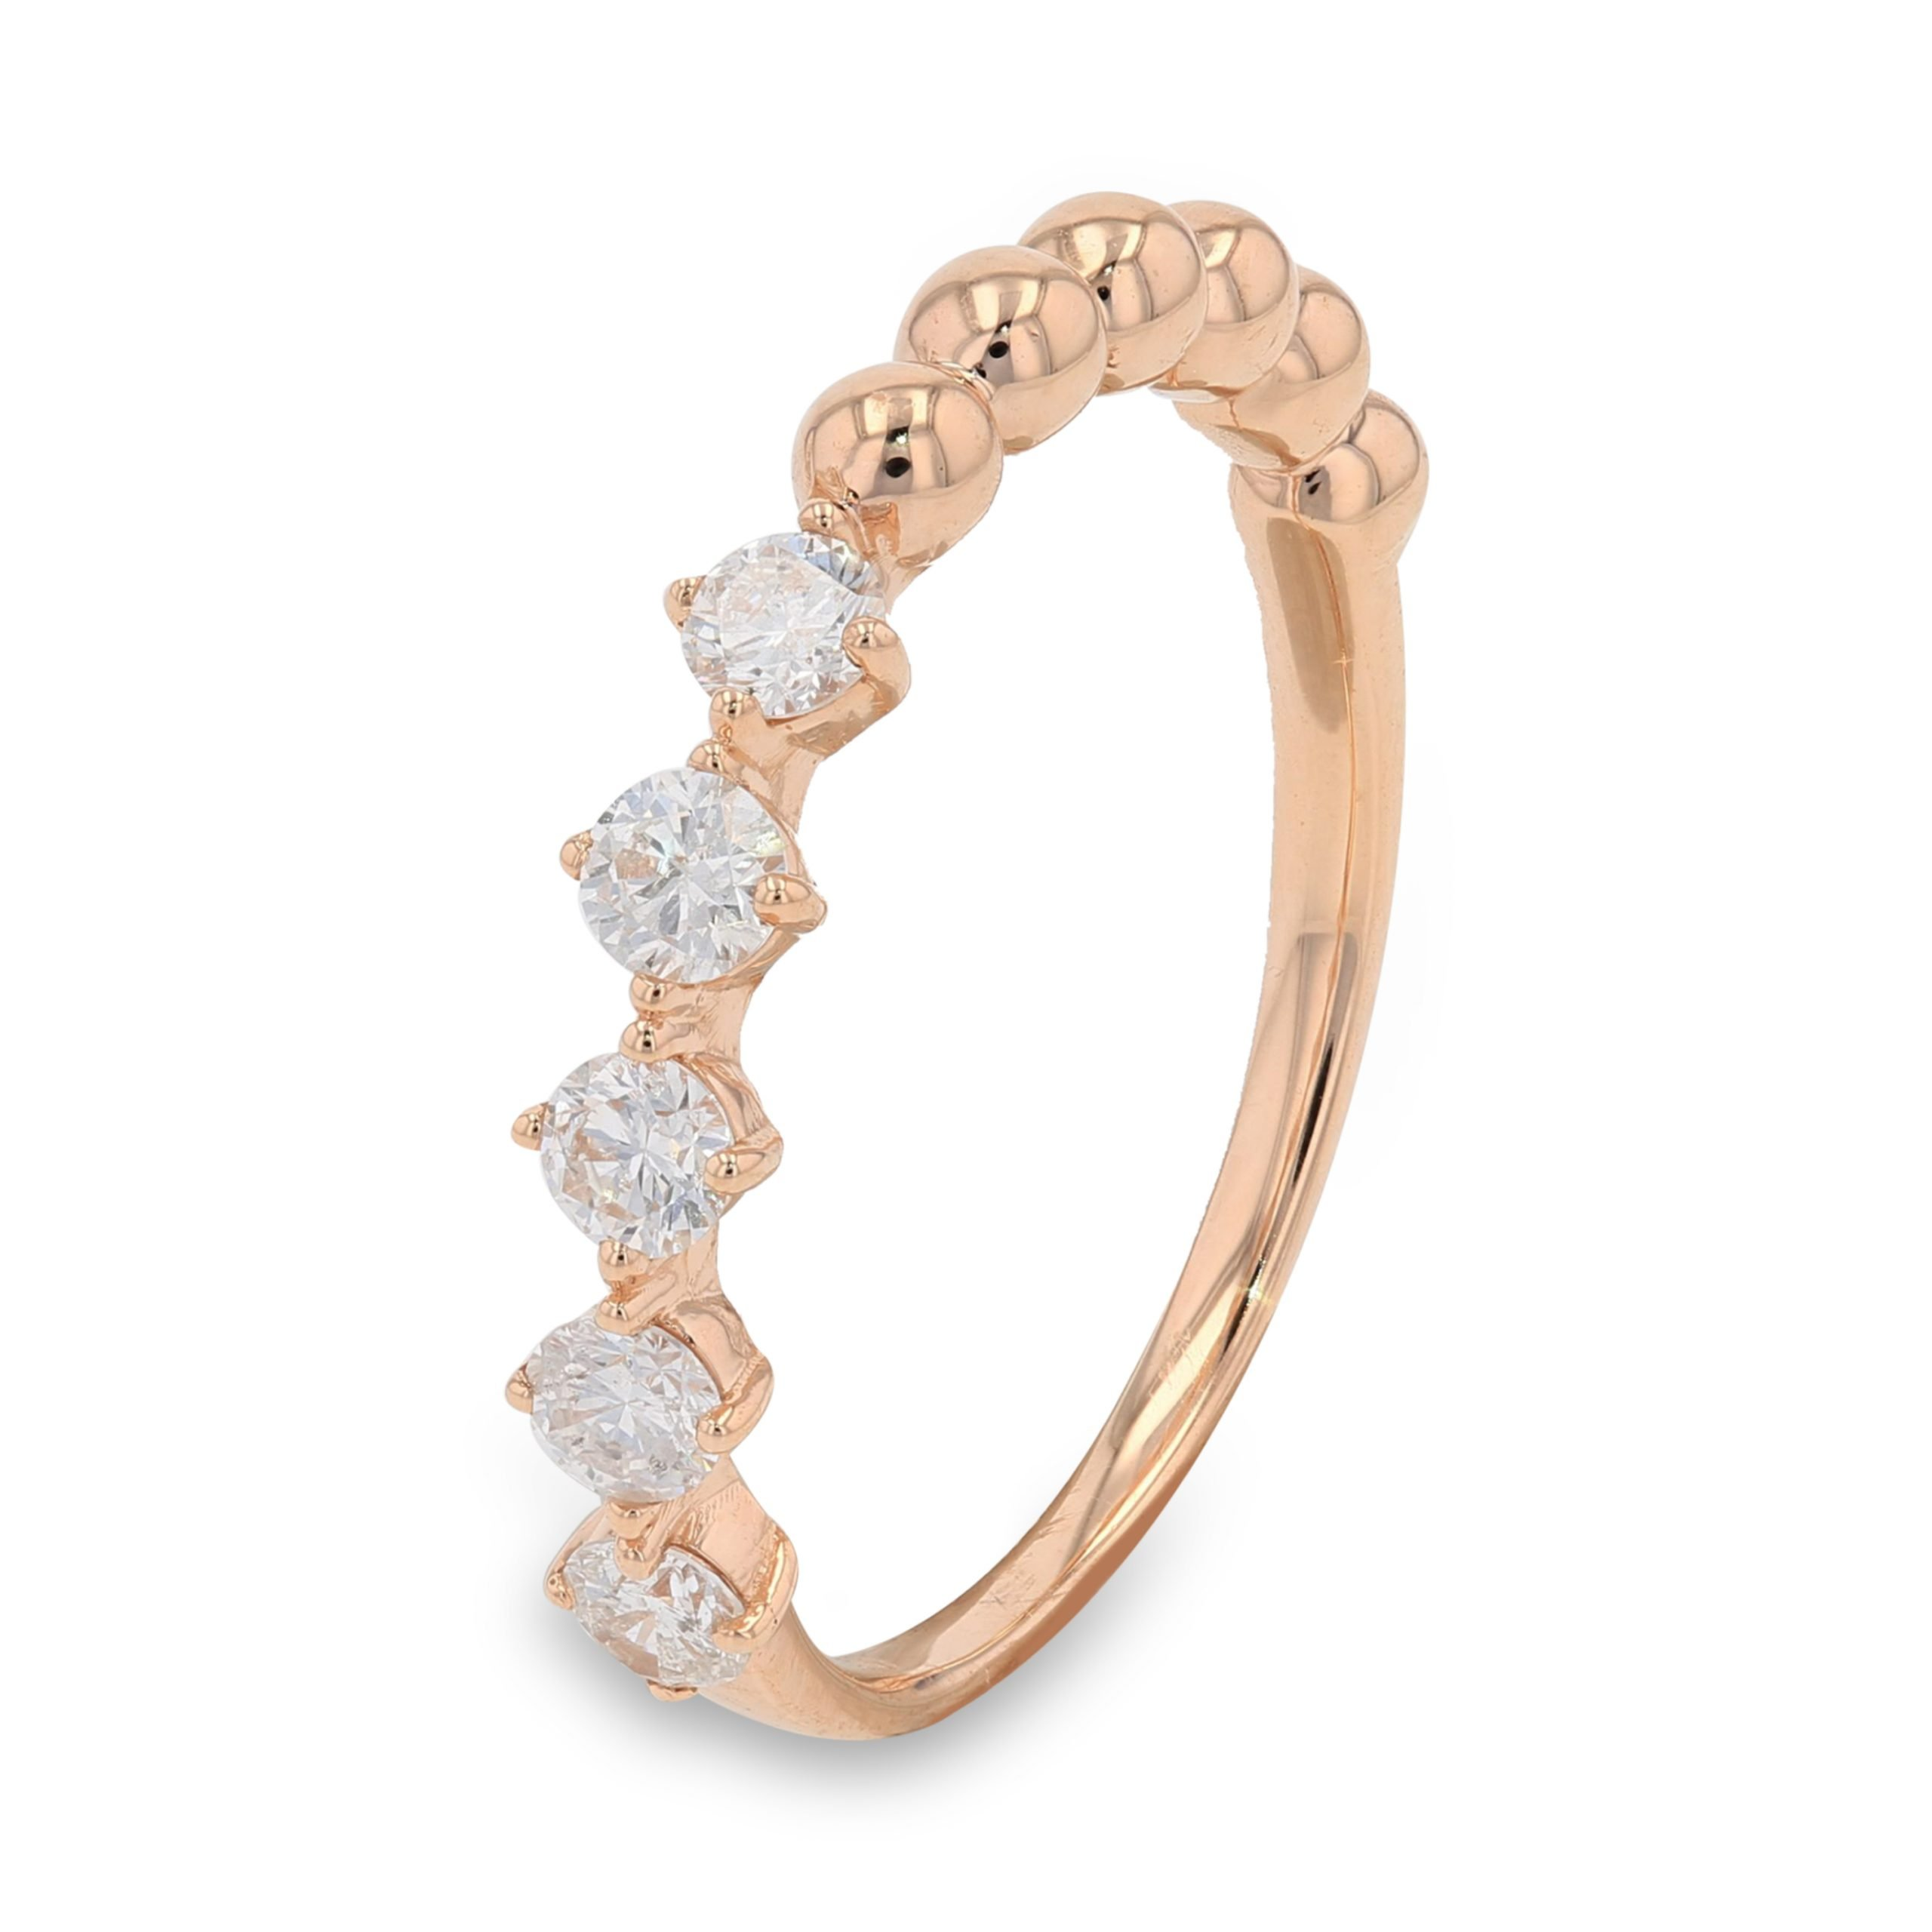 CONTEMPORARY DIAMOND STUDDED ROSE GOLD RING